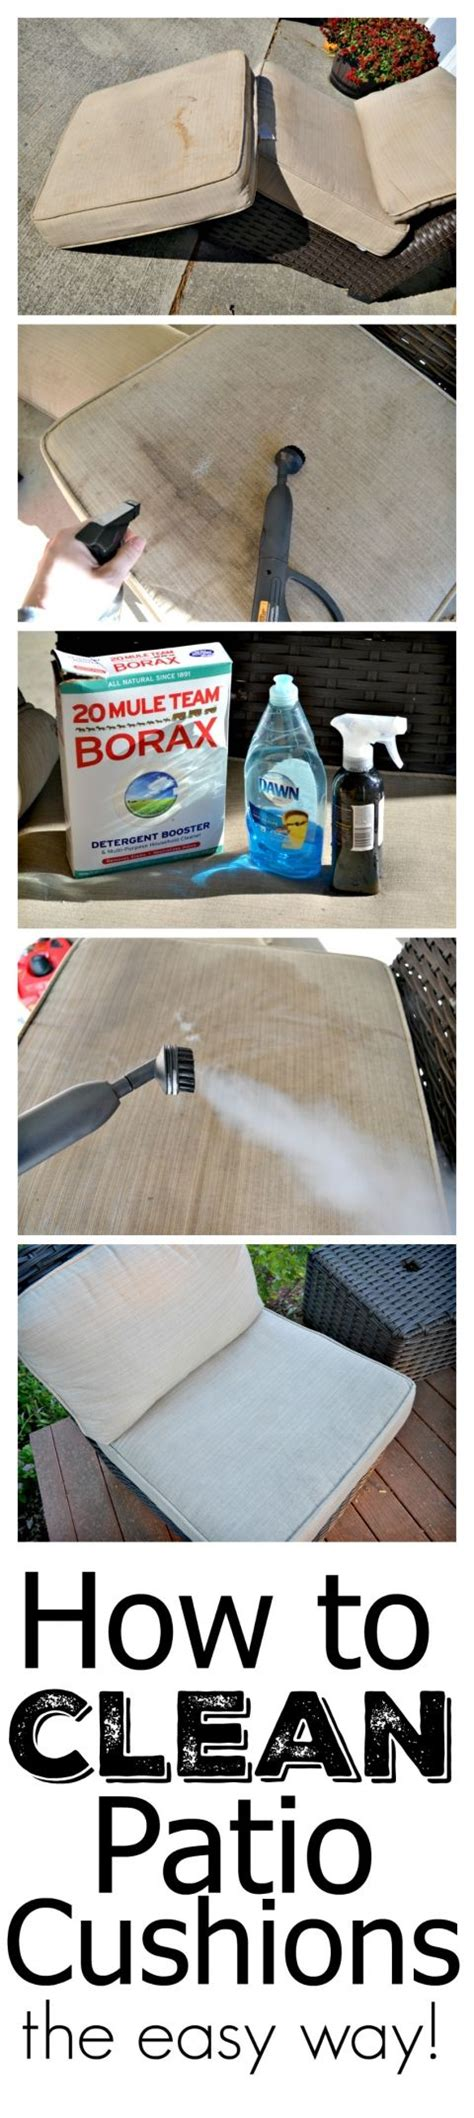 best way to clean couch cushions 25 best ideas about cleaning outdoor cushions on